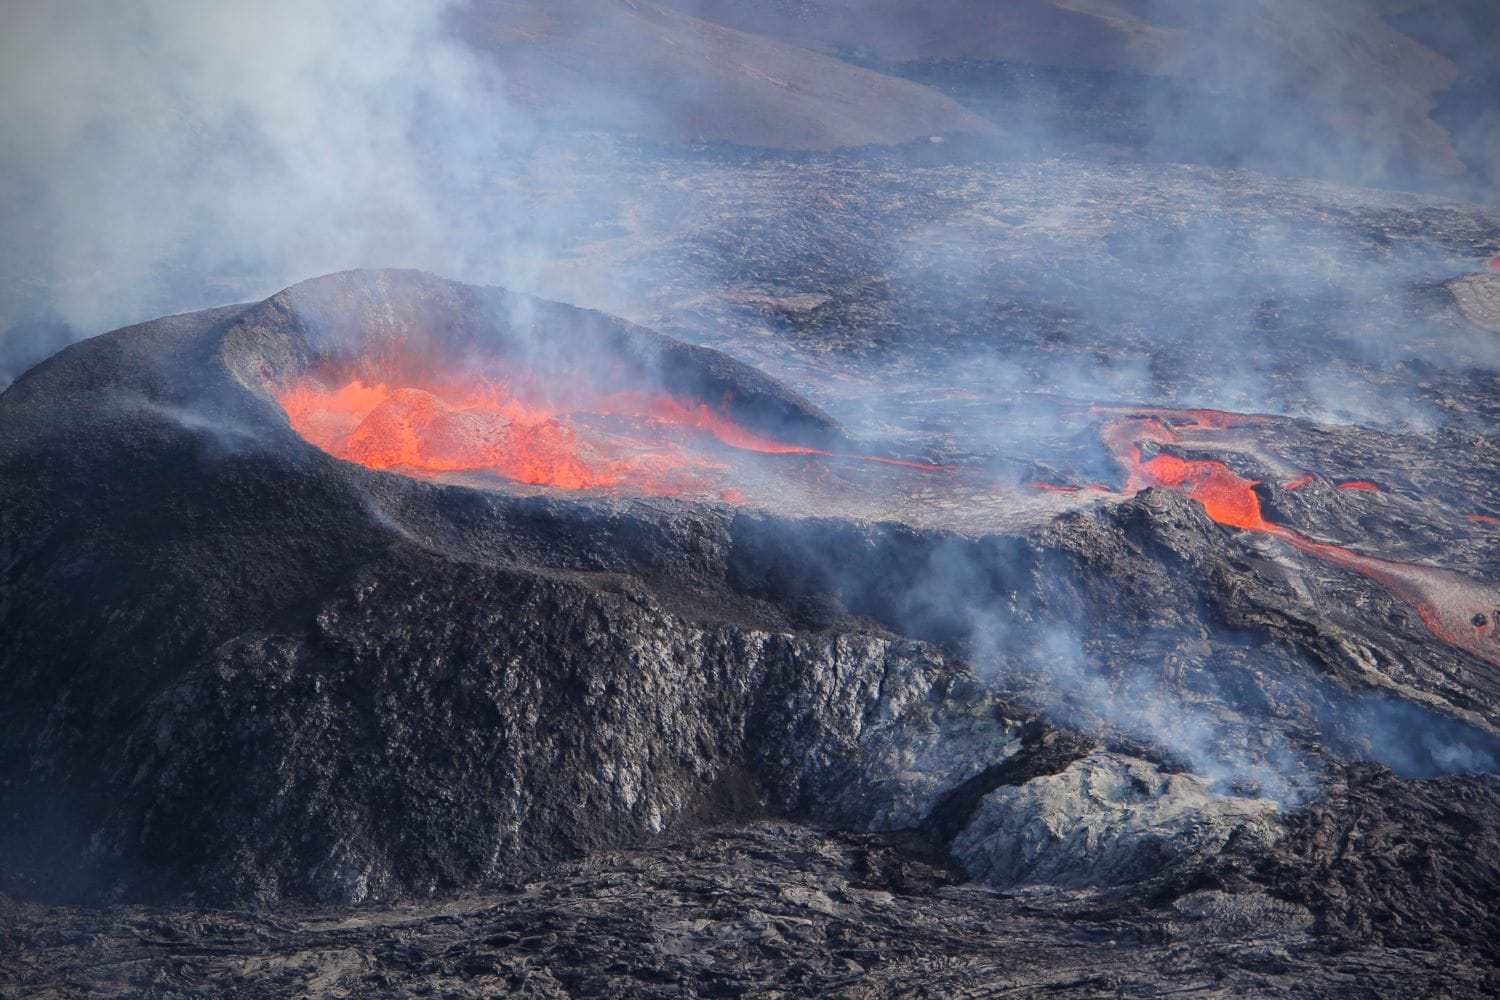 erupting volcano crater with molten red lava in Iceland